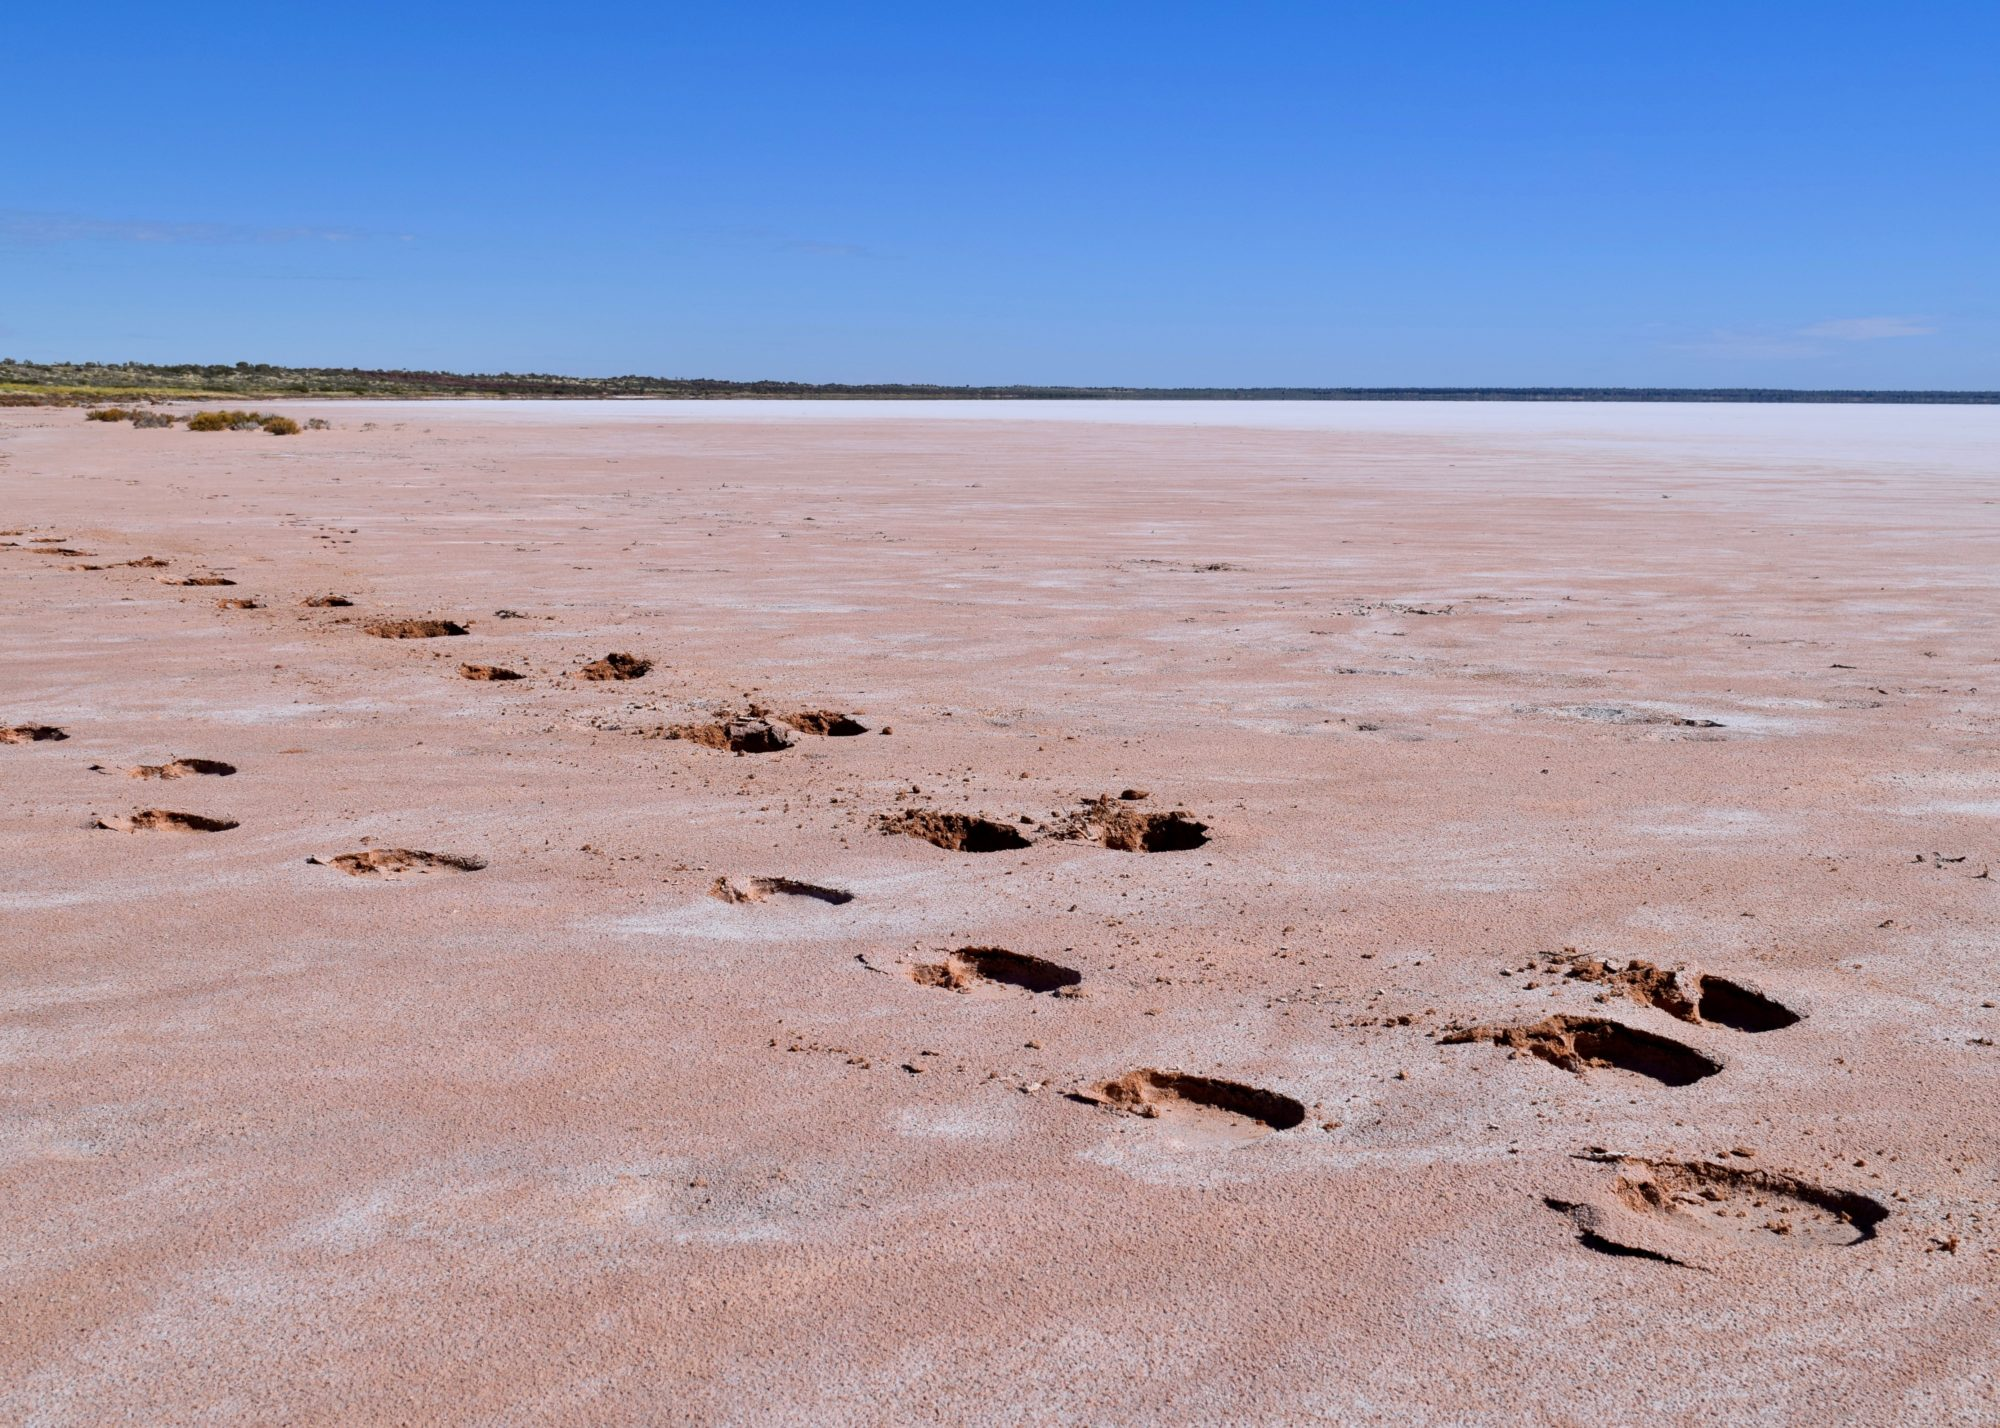 Tracking Camels, Lake Mackay, WA